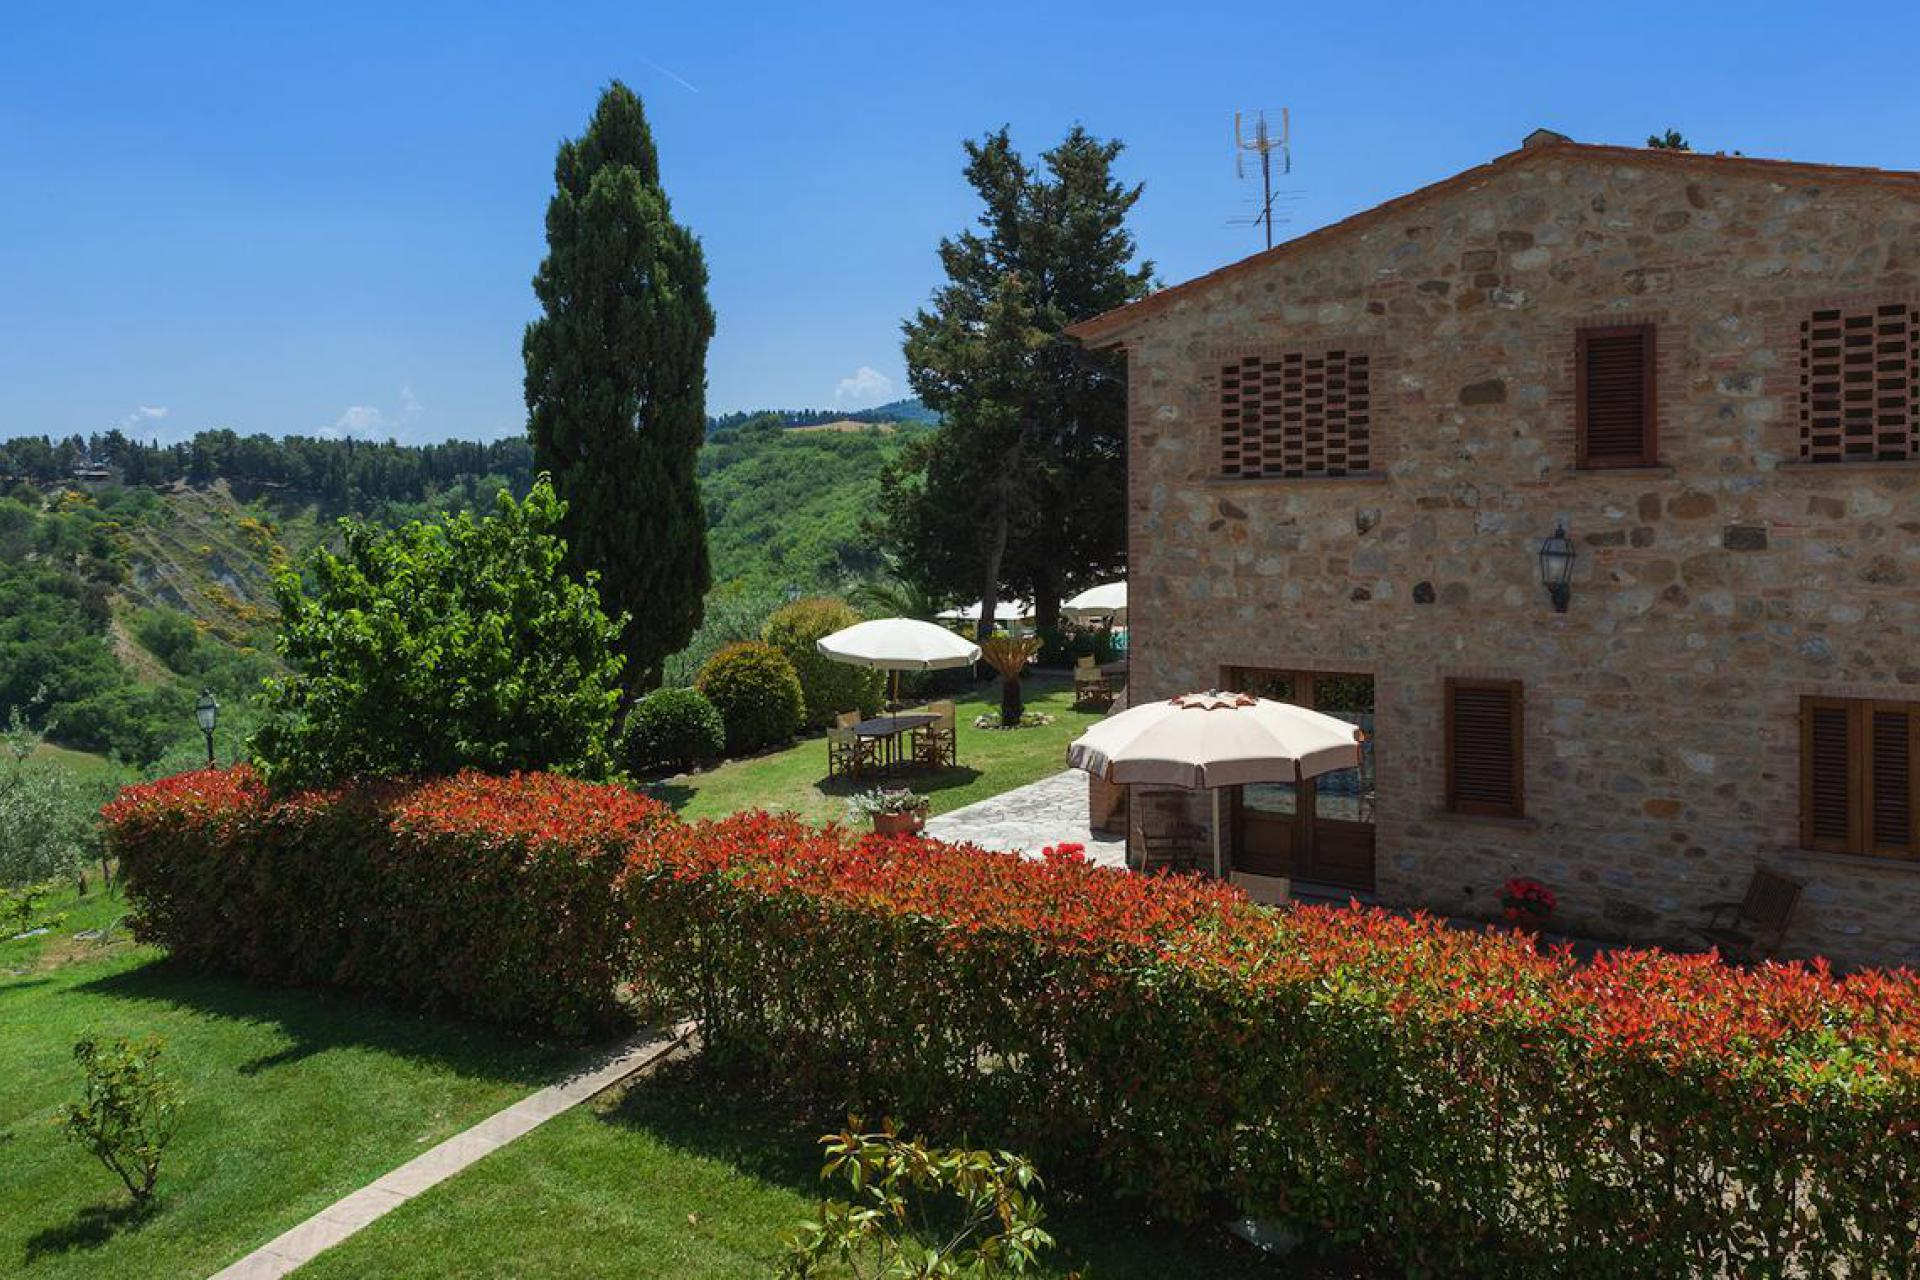 Agriturismo Tuscany Welcoming agriturismo in Tuscany where la mamma cooks